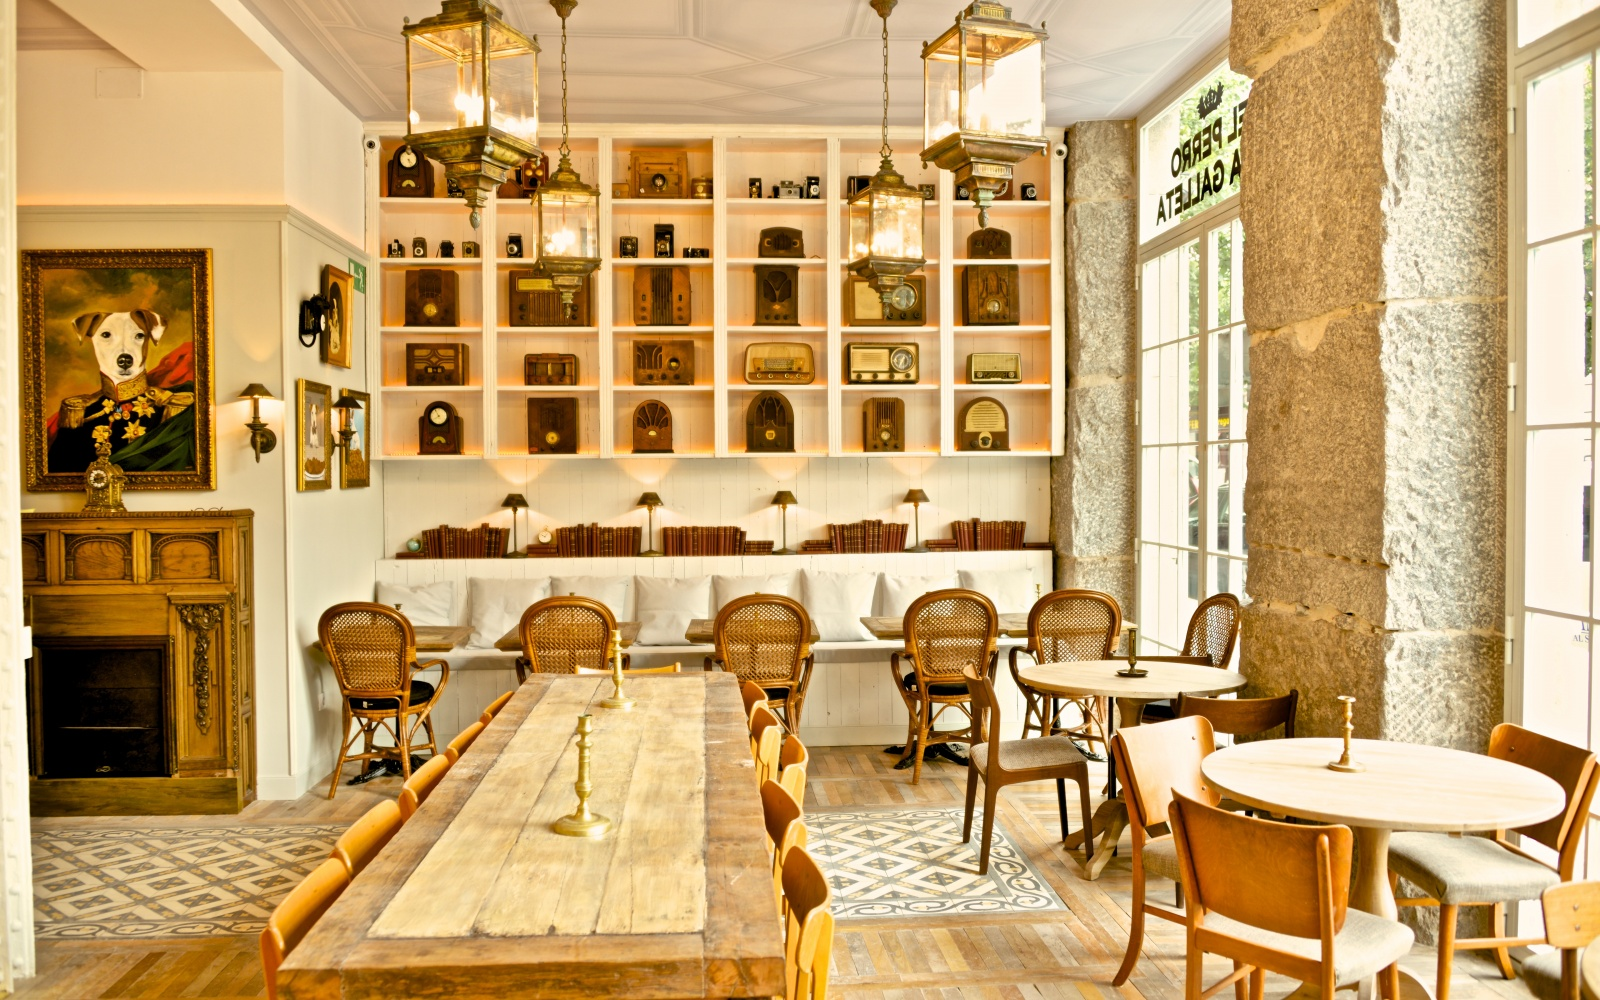 The hottest new madrid restaurants travel leisure for La casa encendida restaurante madrid